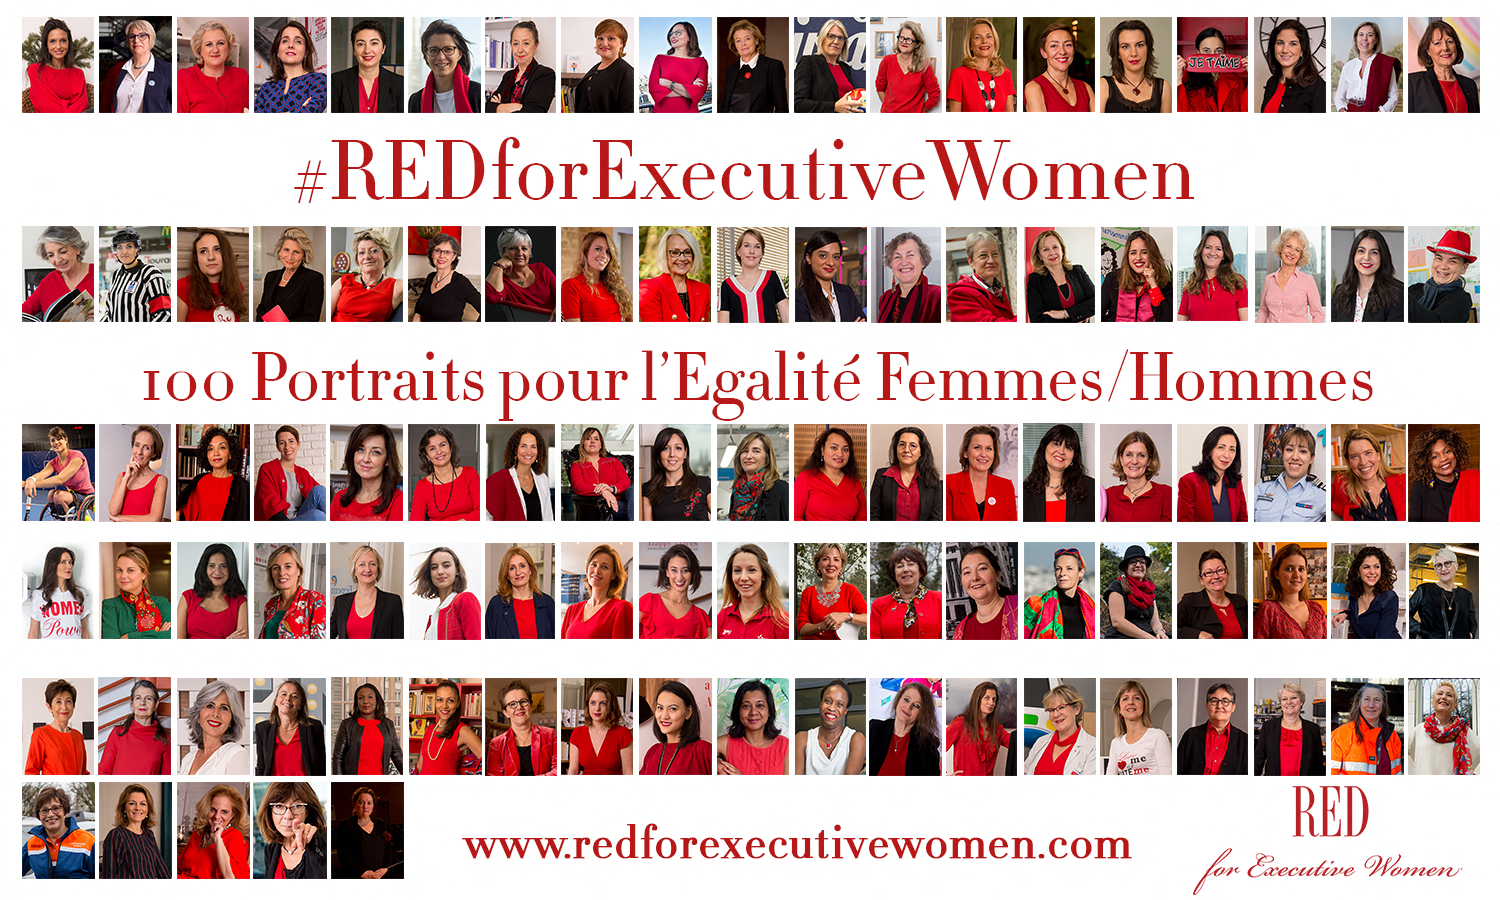 ©Gaël Dupret, France, RED for Executive Women